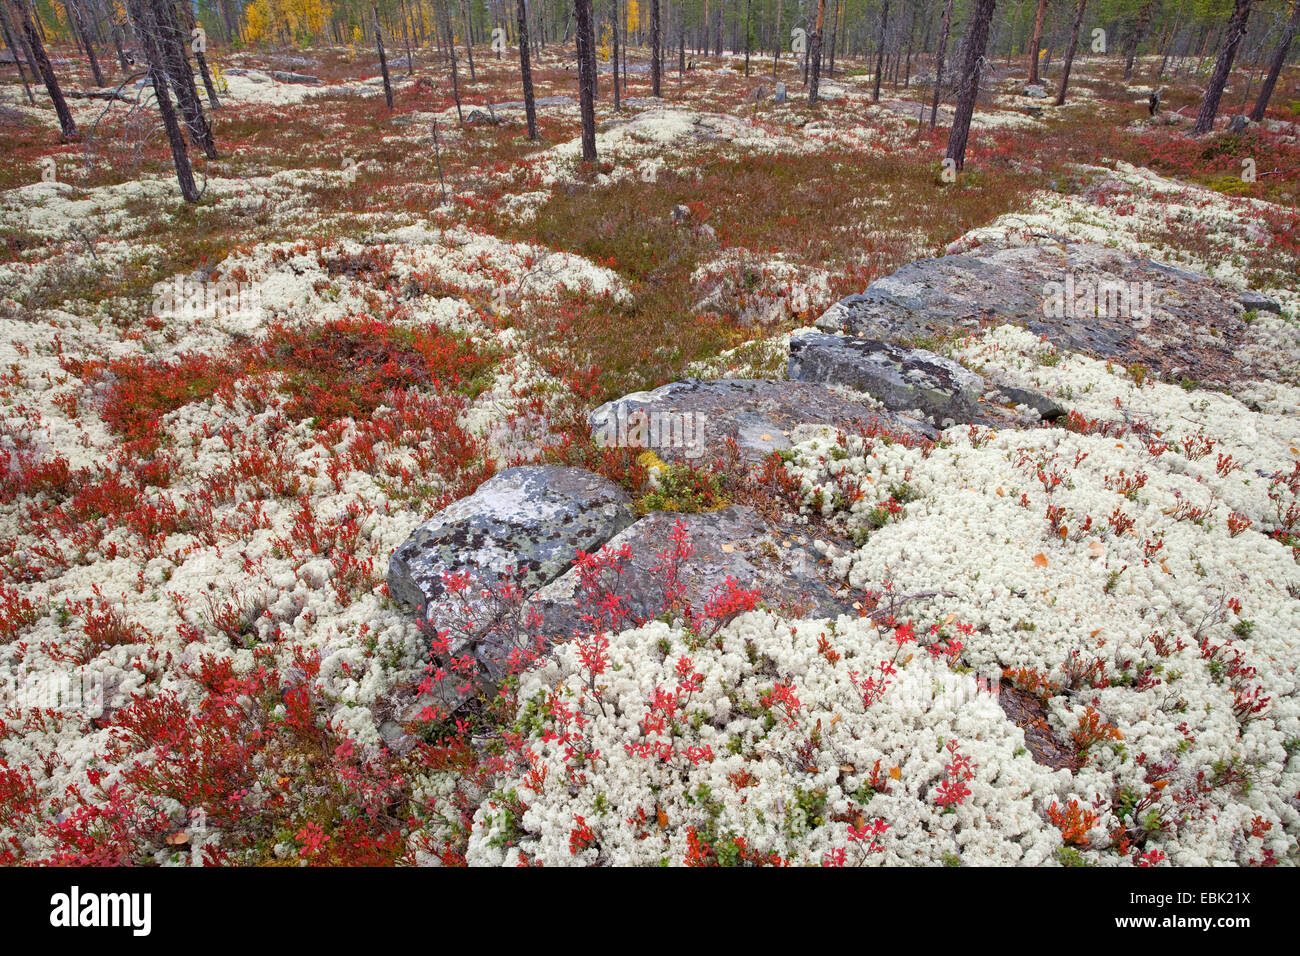 lichens autumnal boreal forest, Norway, Rondane National Park - Stock Image